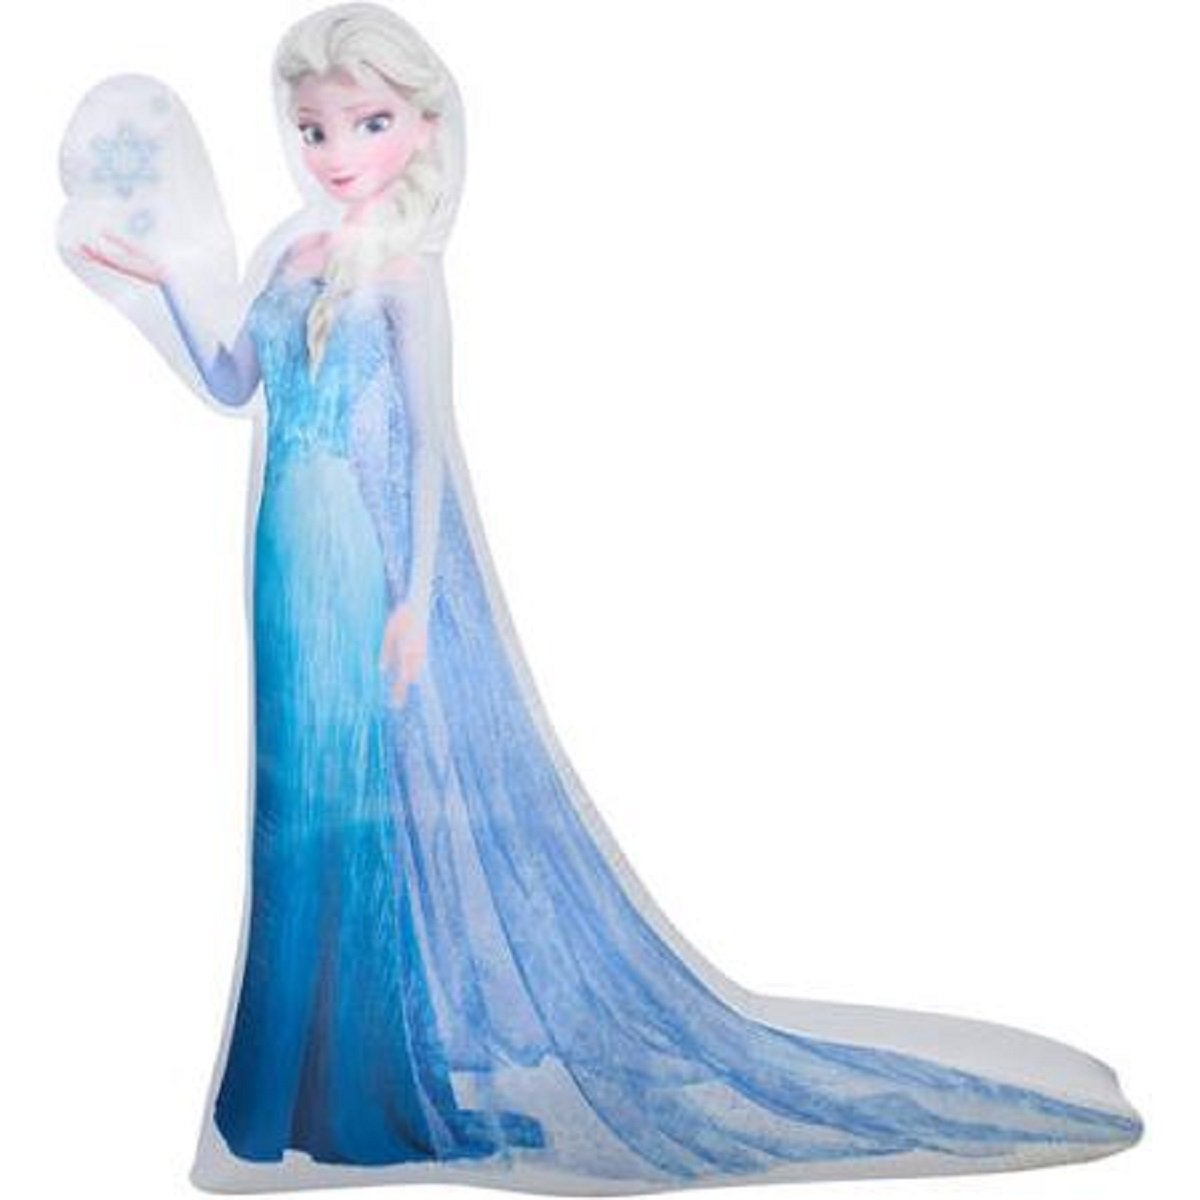 amazoncom christmas inflatable 5 led photoreal elsa disney frozen outdoor yard decoration garden outdoor